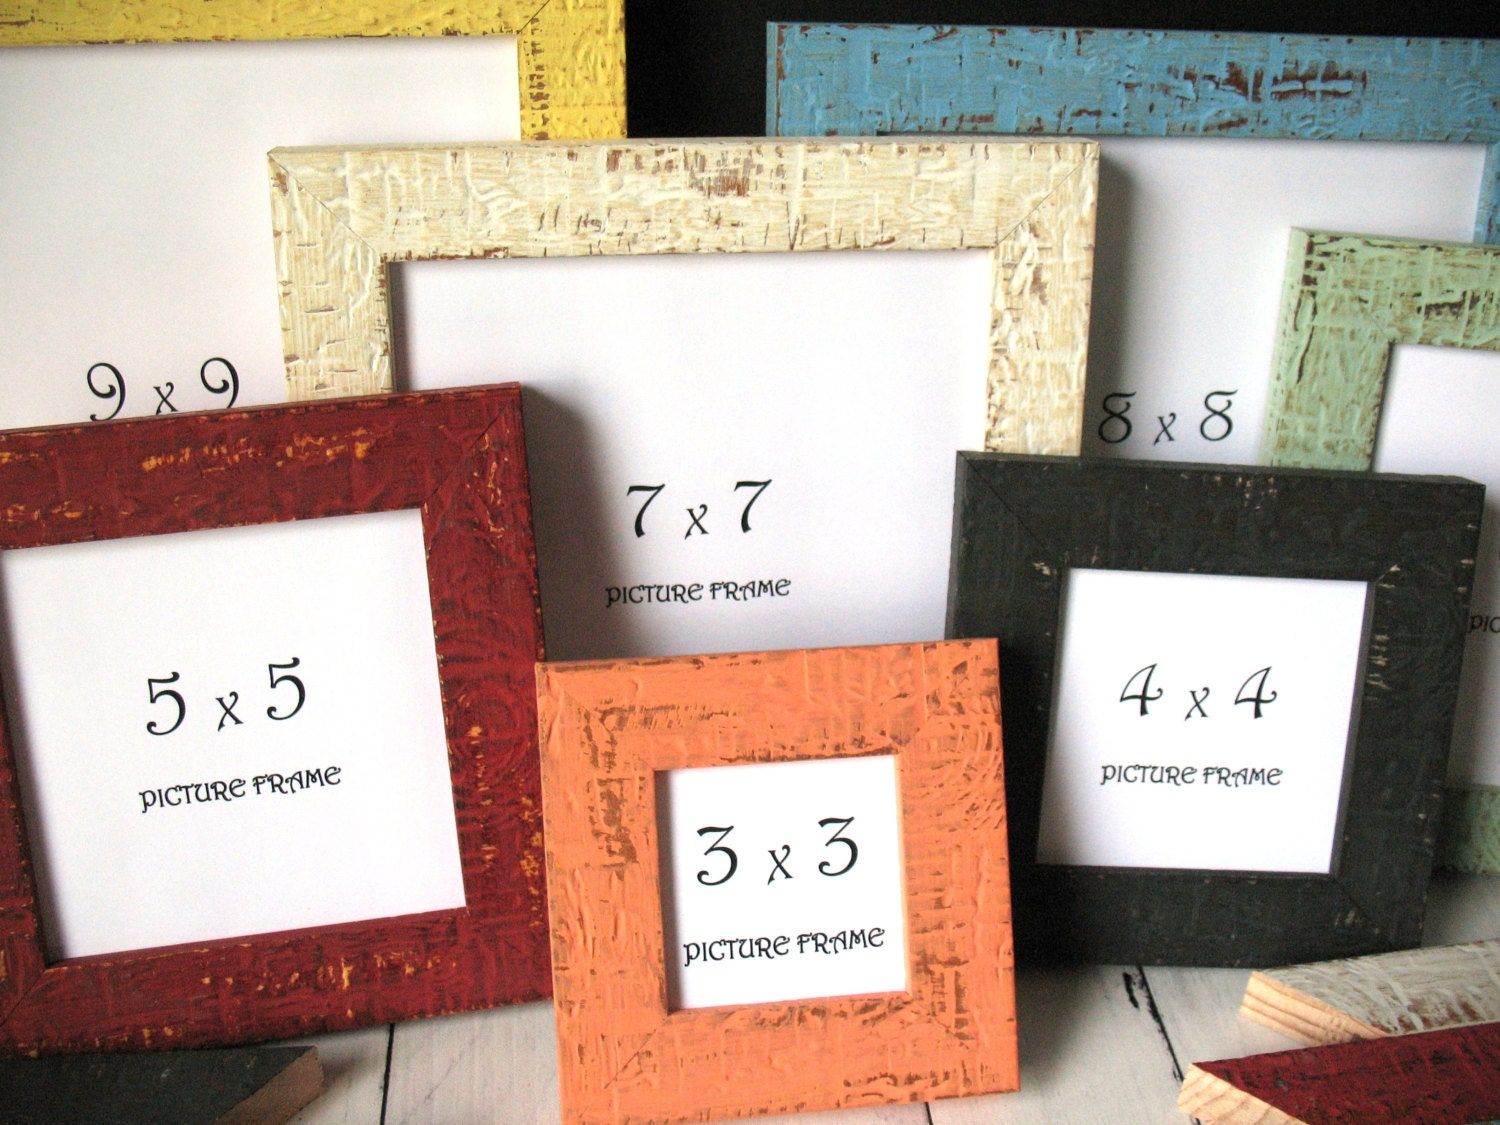 mini beachy picture frames instagram photo frame rustic distressed 3x3 4x4 5x5 6x6 7x7 8x8 9x9 w glass shabby decor